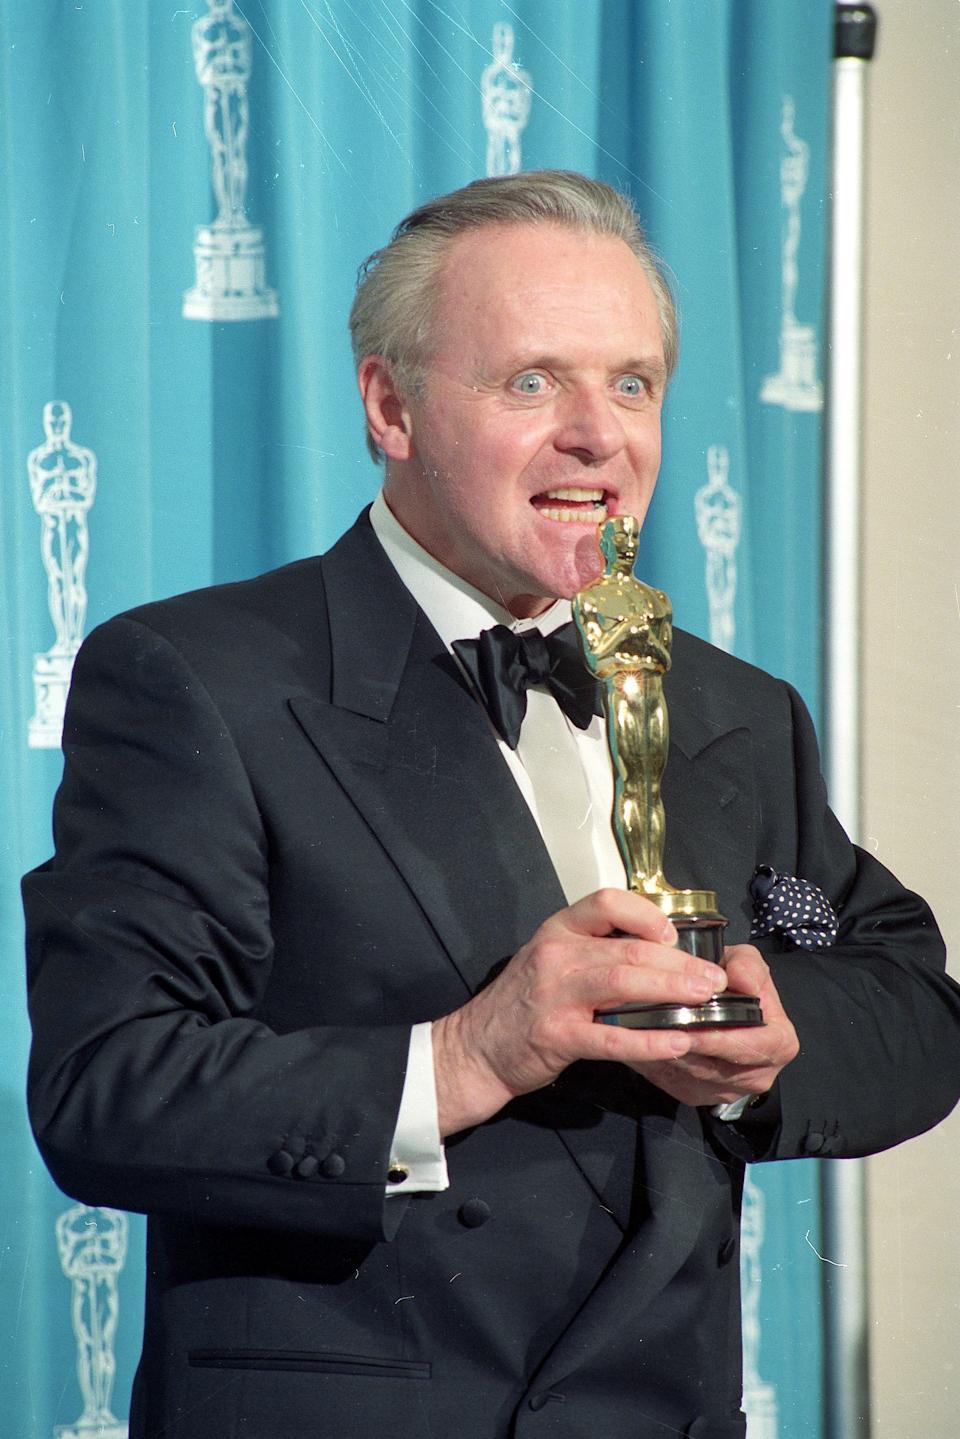 Actor Anthony Hopkins pretends to eat his Oscar Award backstage at the 64th Annual Academy Awards in Los Angeles, on Monday, March 30, 1992.  Hopkins won Best Actor honors for his portrayal of Dr. Hannibal Lecter in